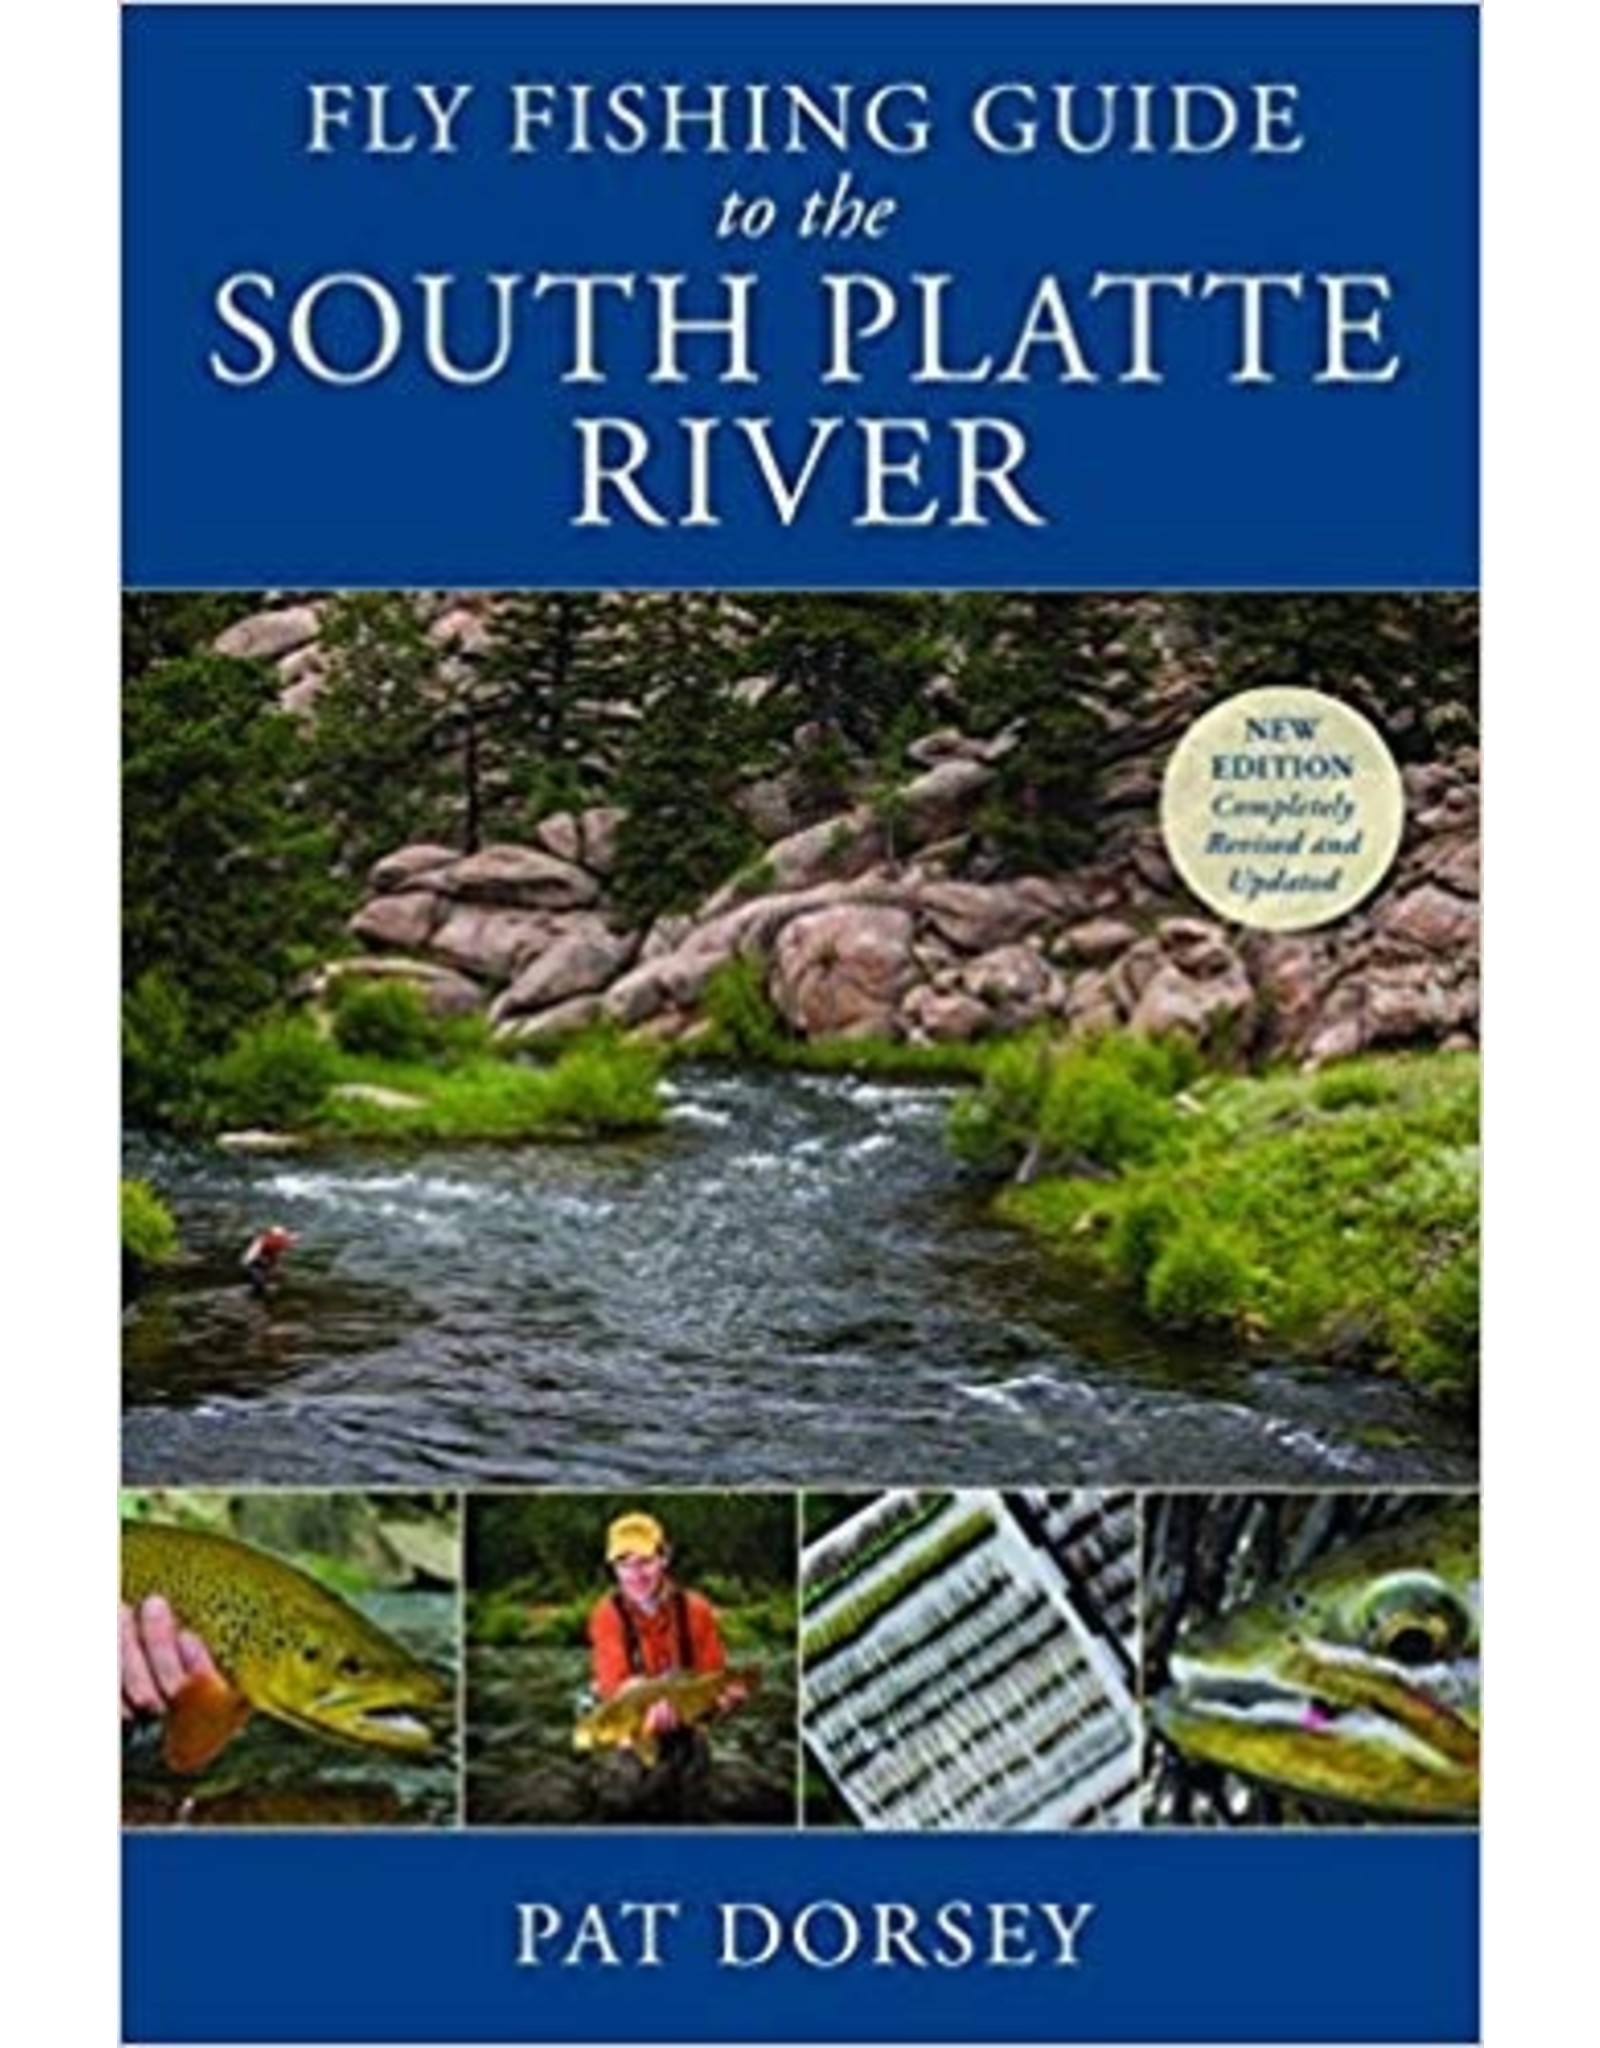 Fly Fishing Guide to the South Platte River by Pat Dorsey